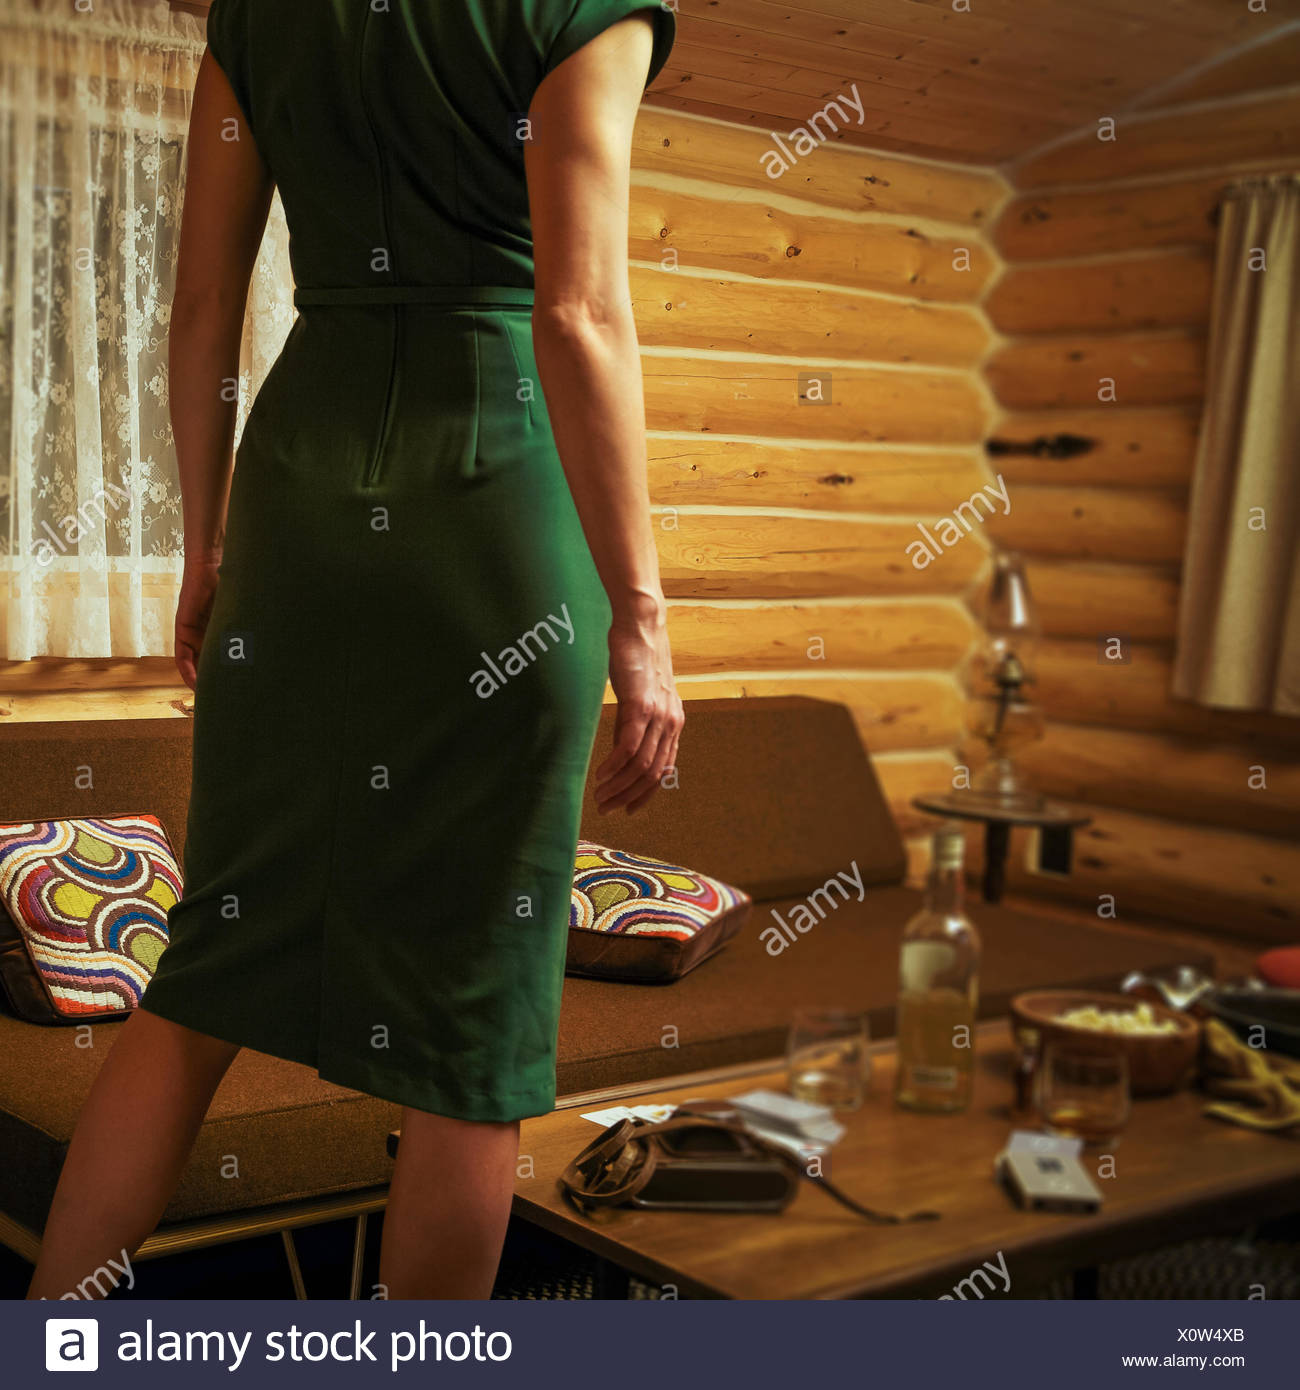 Canada, Alberta, Cochrane, Rear view of woman in mid-century styled log cabin wearing retro dress Stock Photo